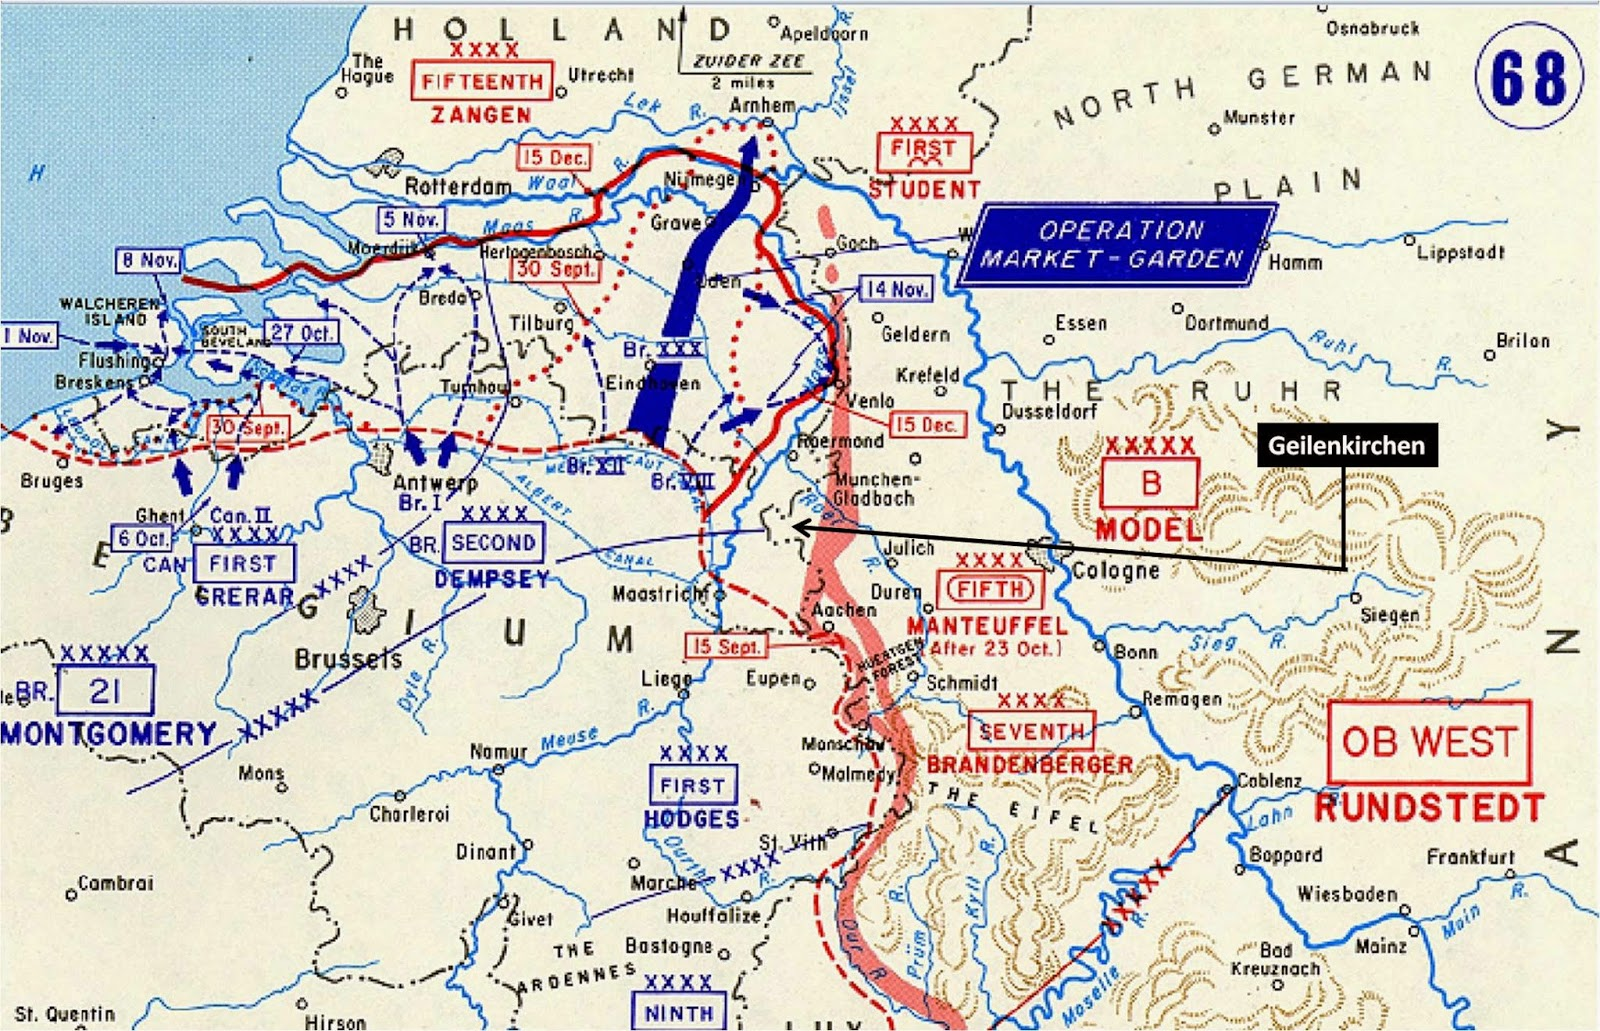 Advances made by the 21st Army Group between September and December 1944